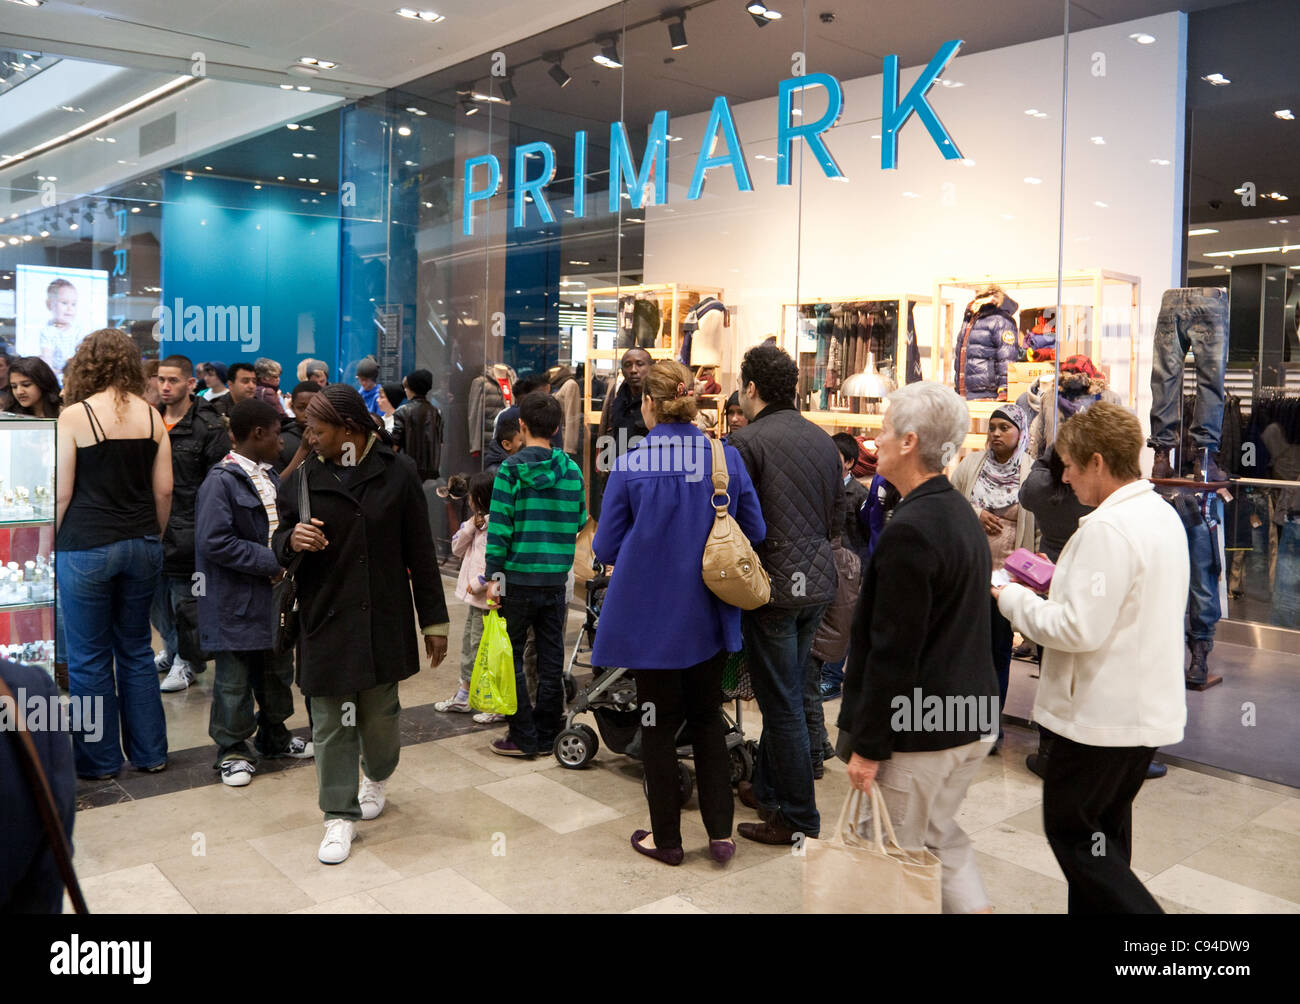 Crowds of people outside the primark store, Westfield shopping centre Stratford London UK Stock Photo